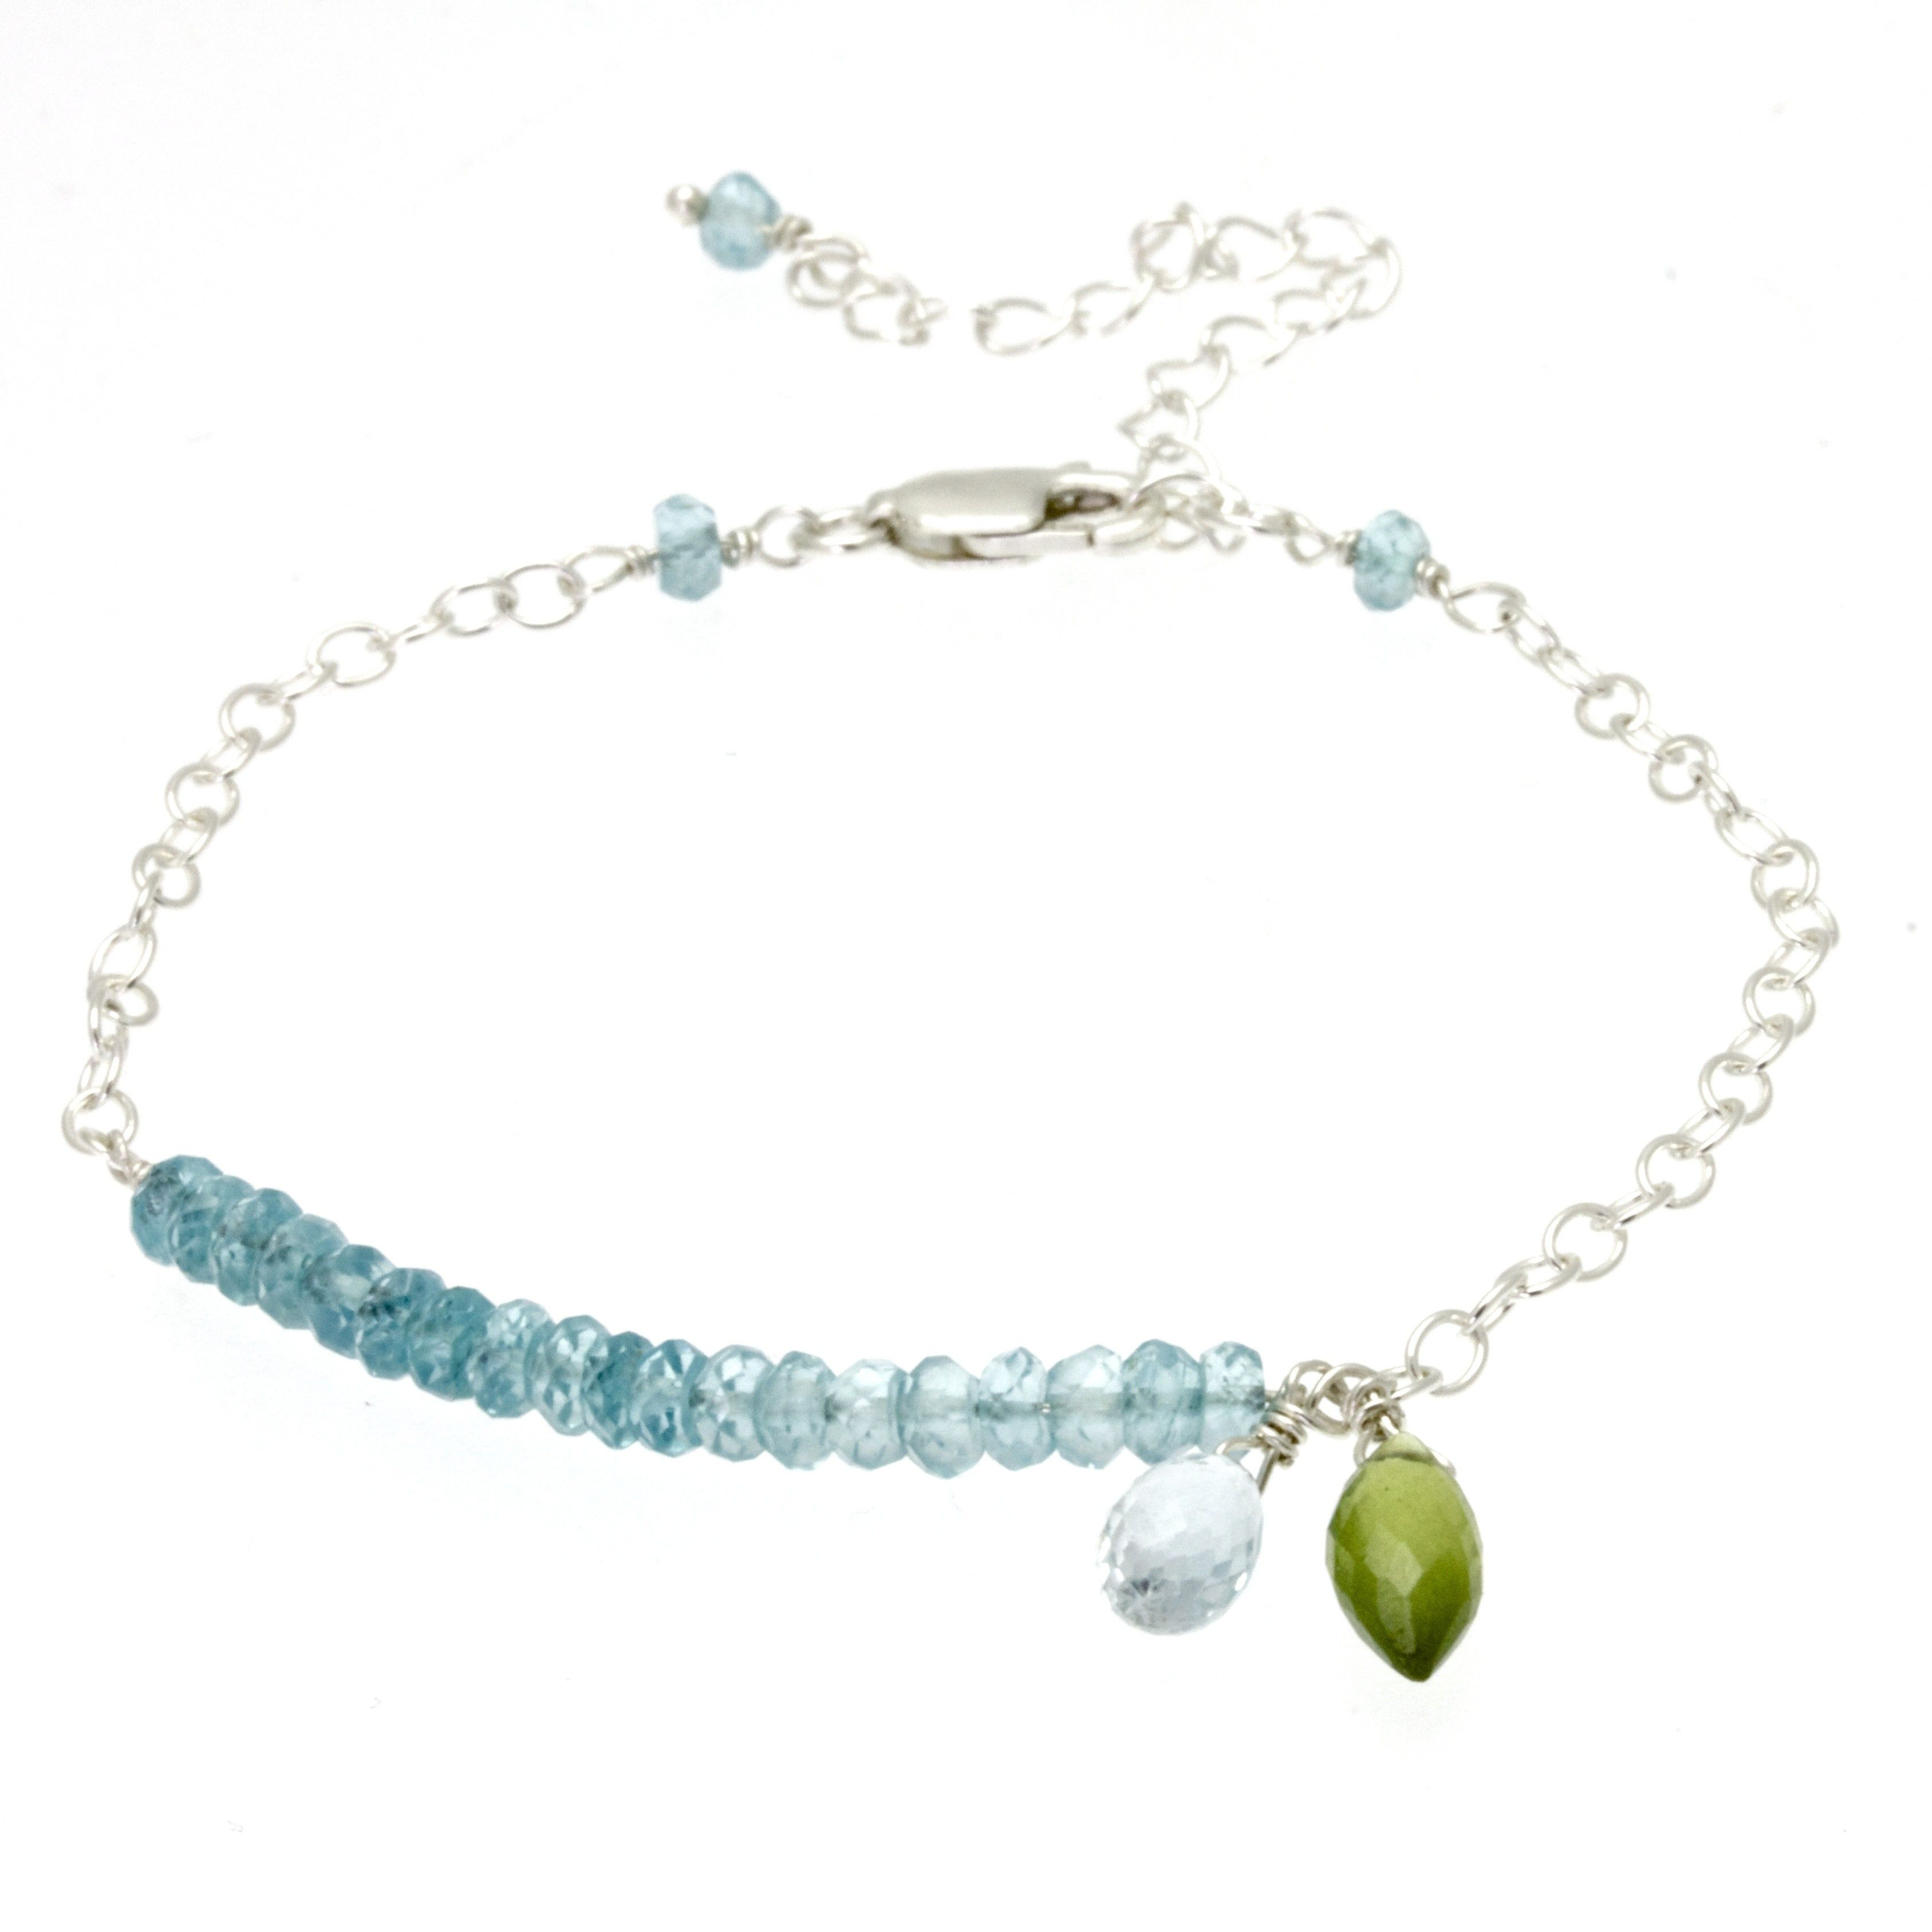 img super melody no chain jewellerybyzm seven jewellery reviews anklet double sterling satellite silver aquamarine stone collections gemstone